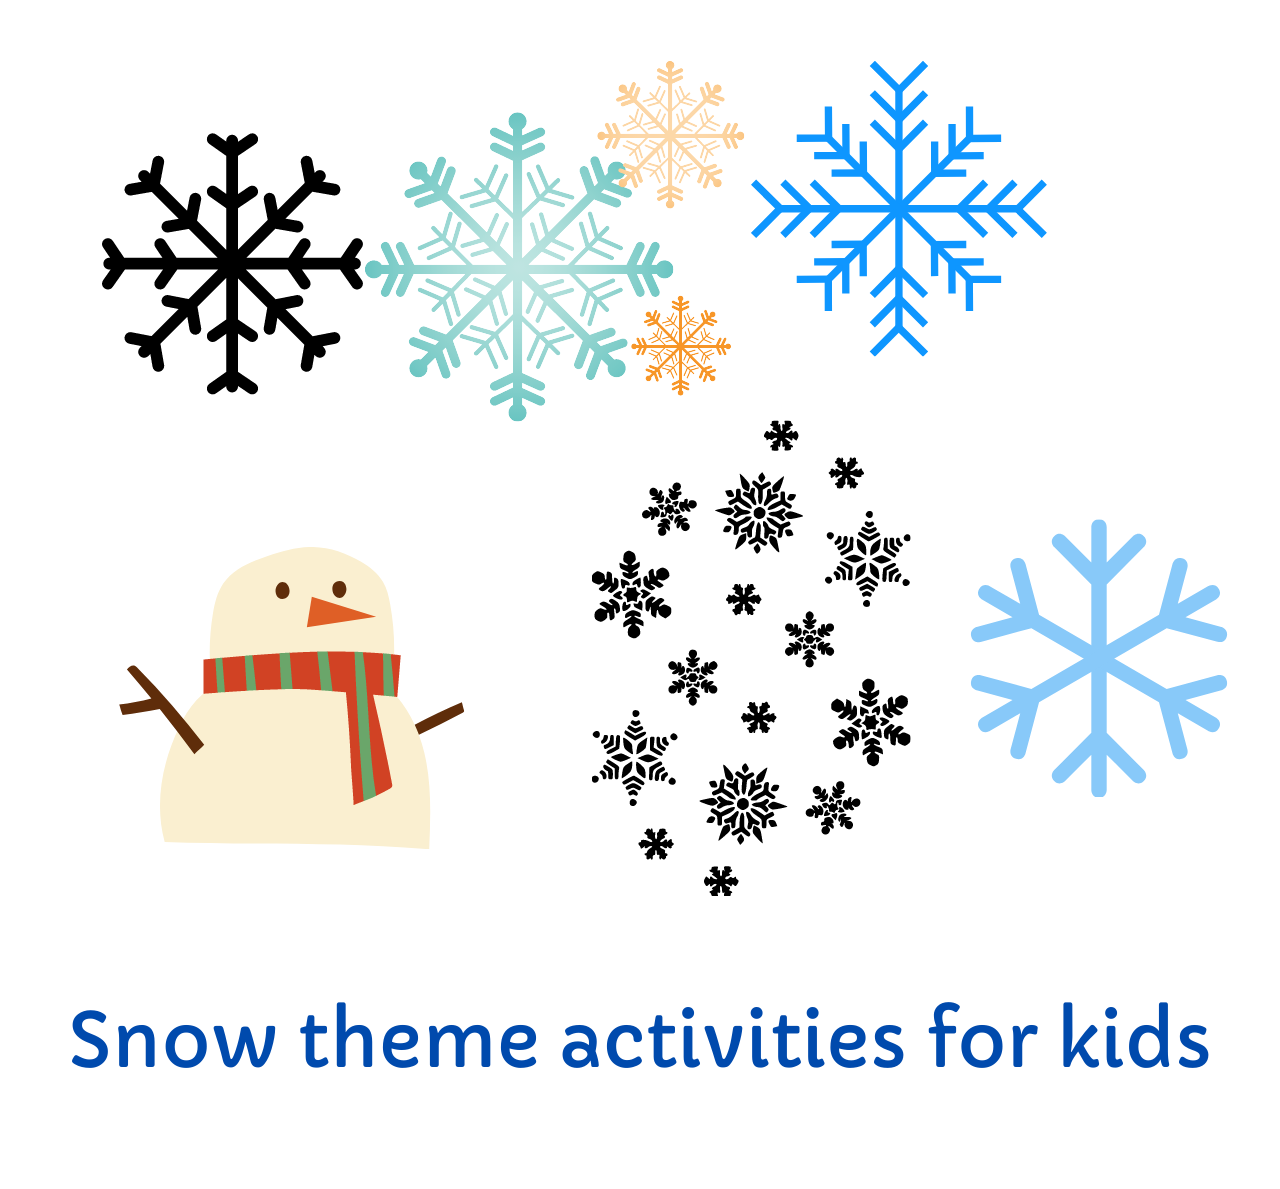 Snow theme activities for kids